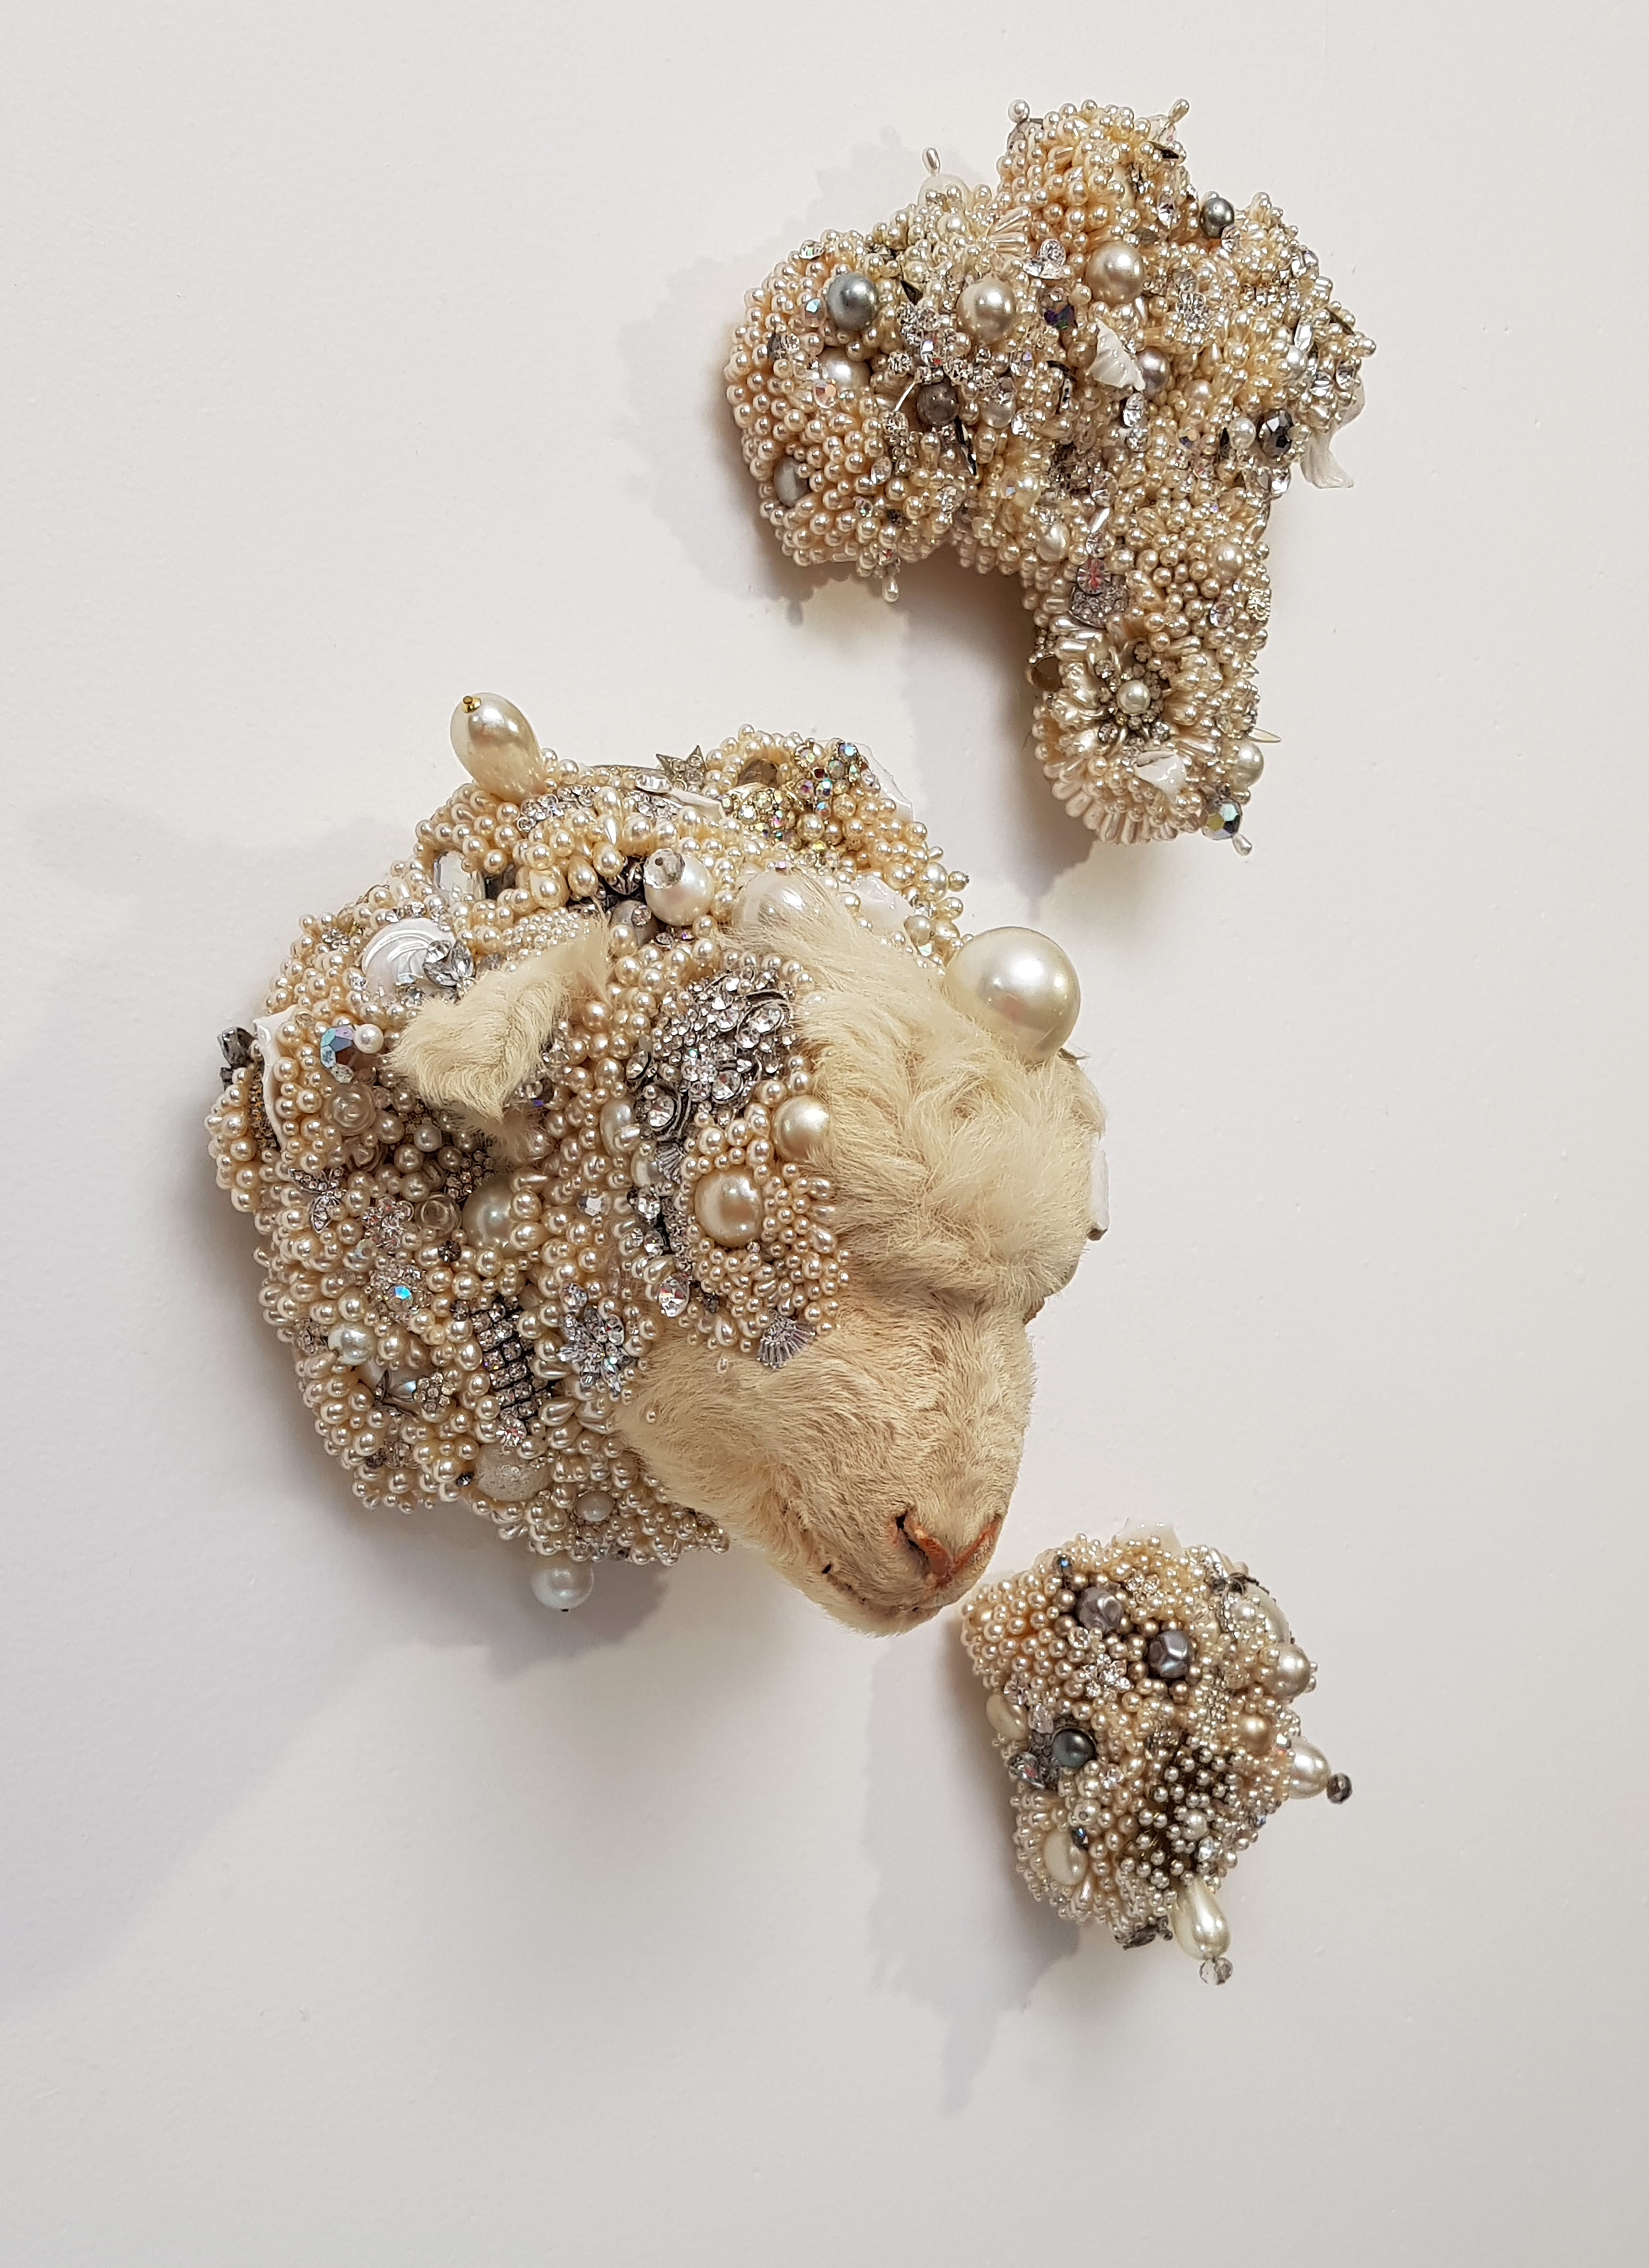 Angla Singer, Under the White (Schenck) 2021, vintage taxidermy lamb head, handmade porcelain leaves, pearls, jewels, mixed media.